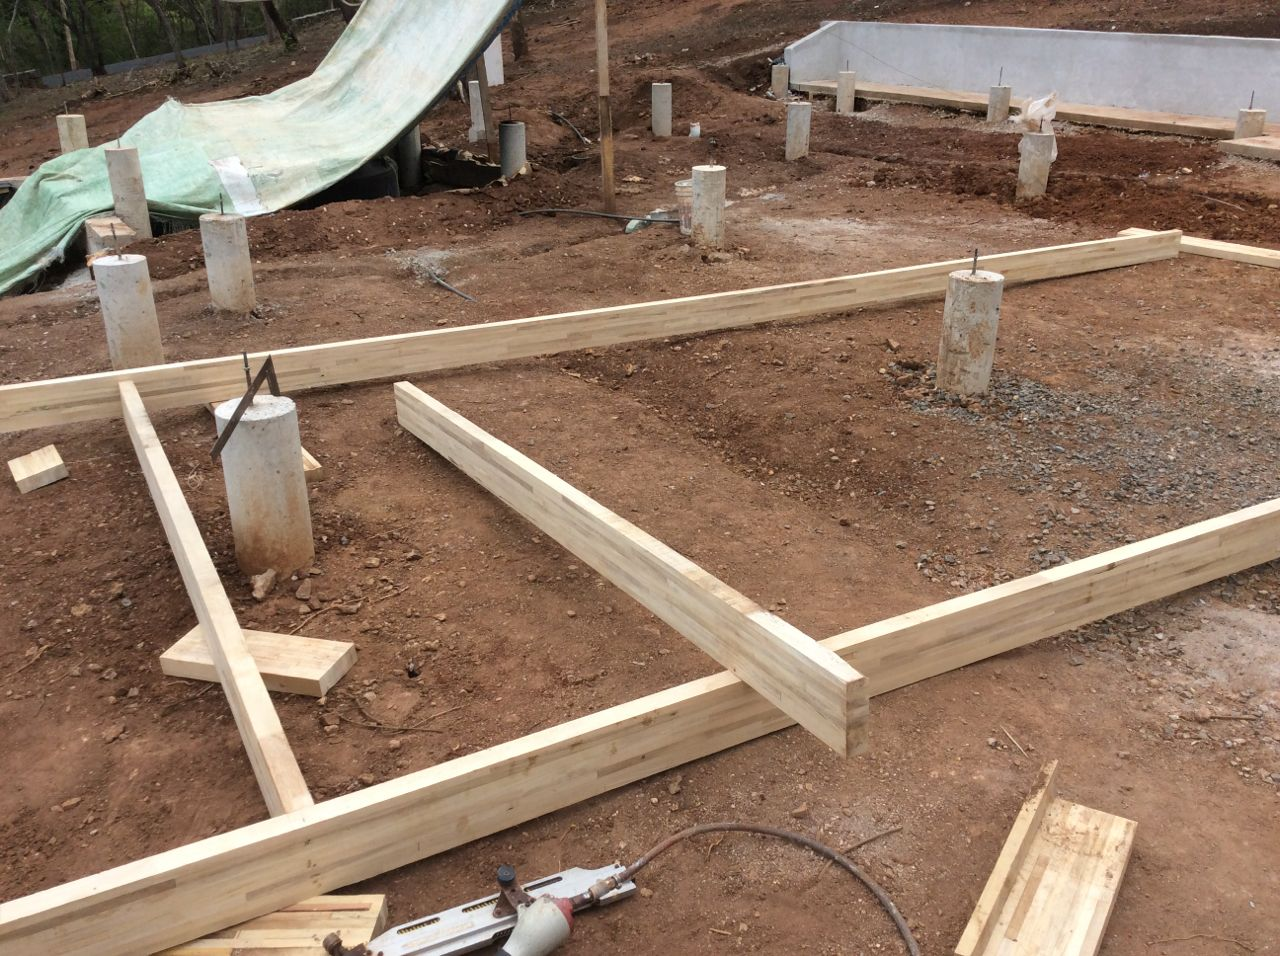 Asssembling joists sections on ground